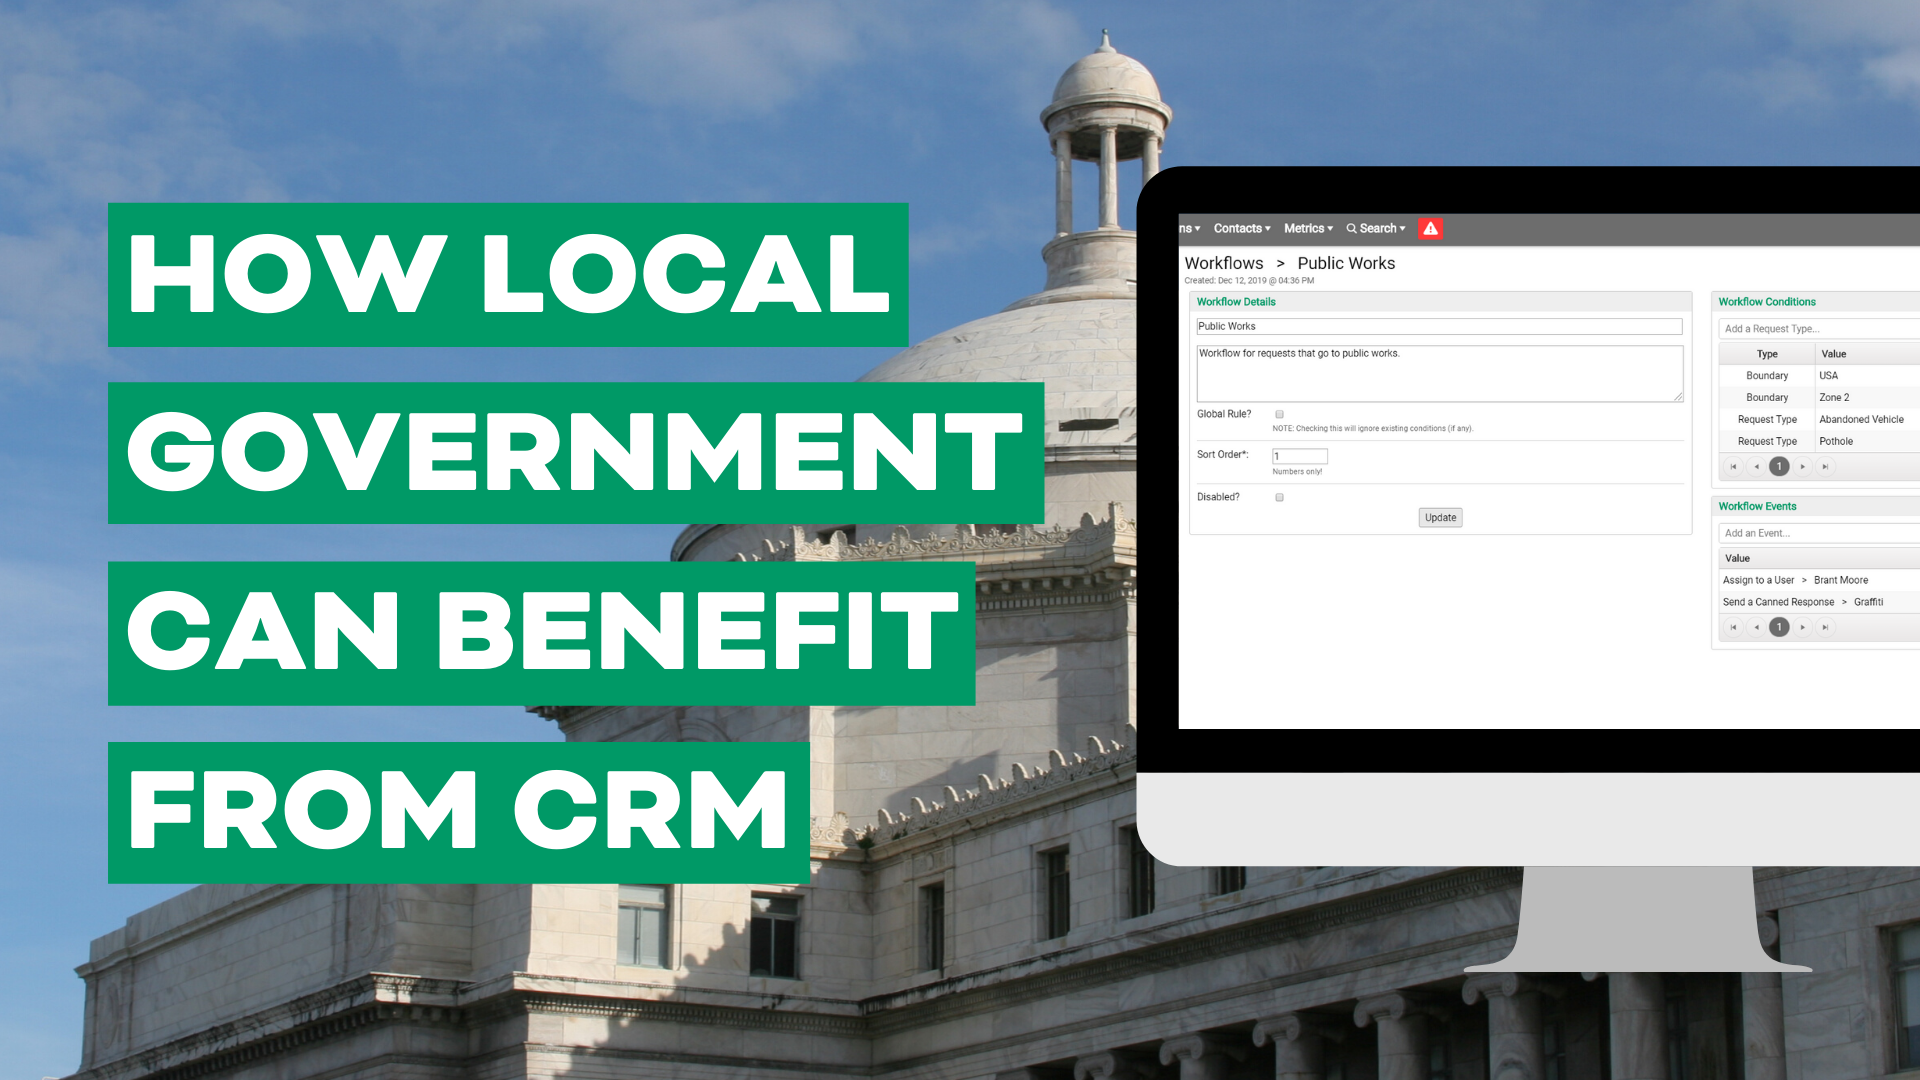 Four Benefits of CRM for Government